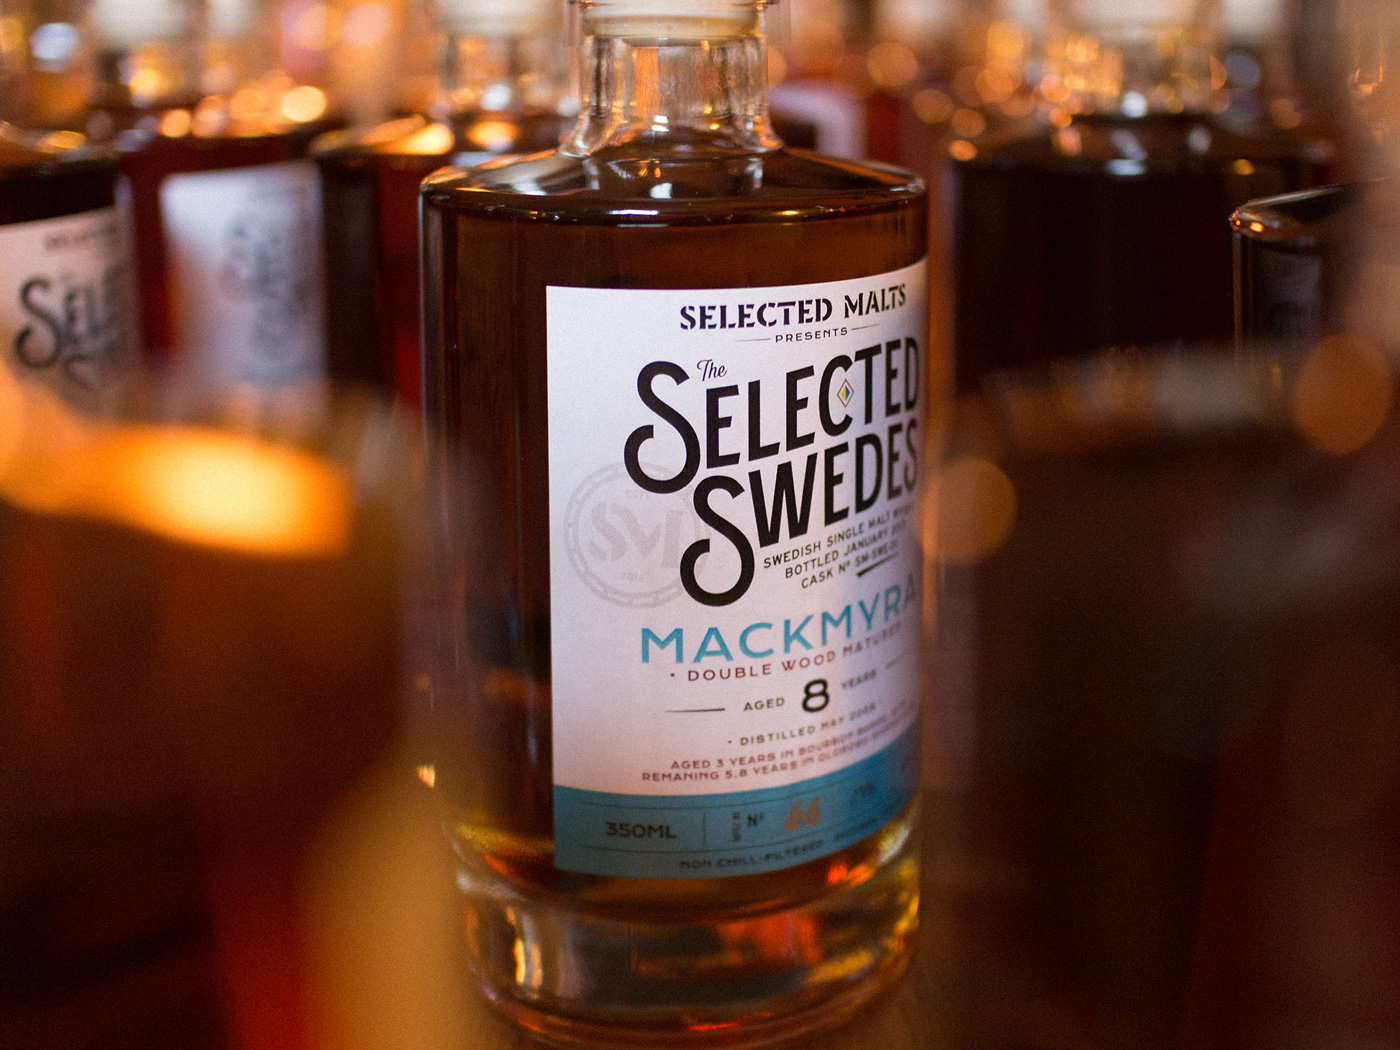 Selected Malts Selected Swedes Mackmyra Bottle